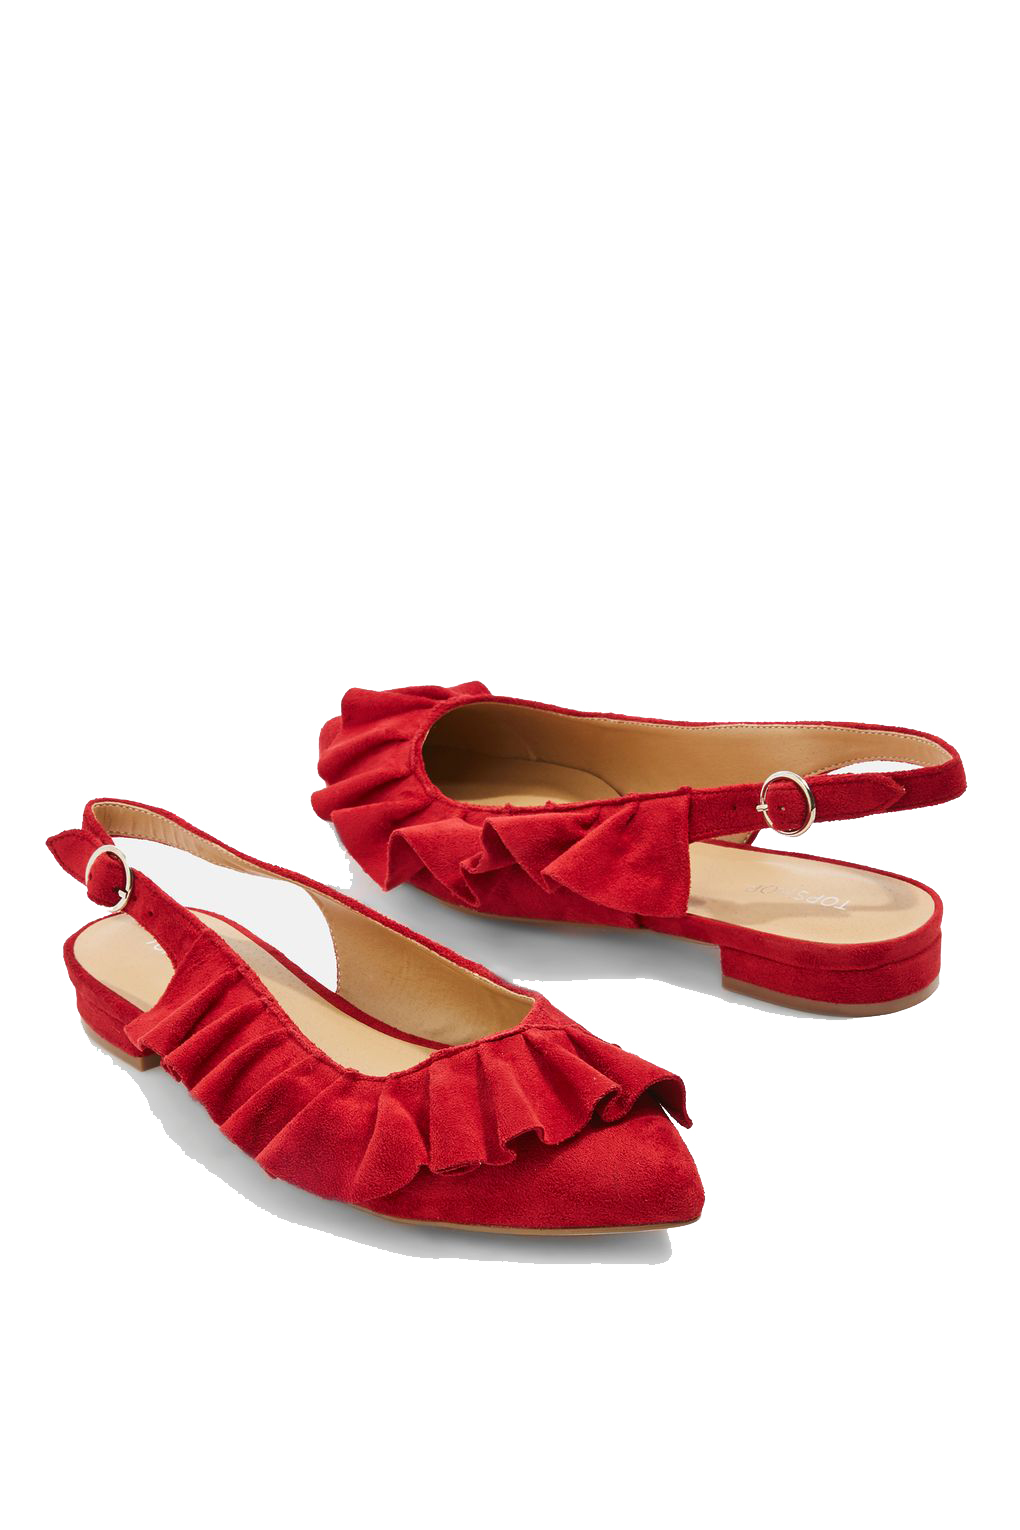 Topshop Ruffle Shoes.jpg